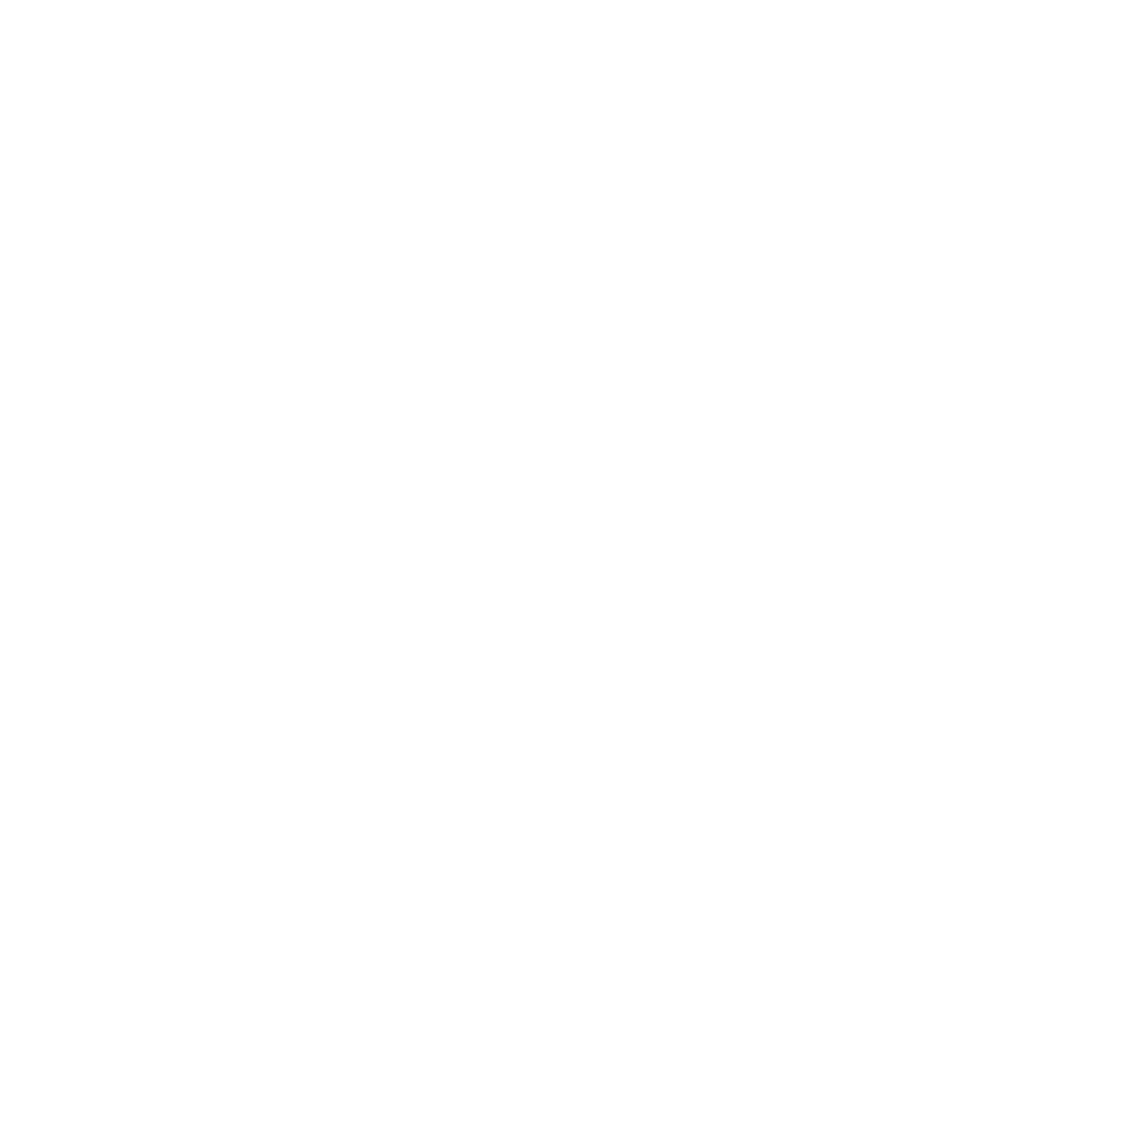 drupal development service icon